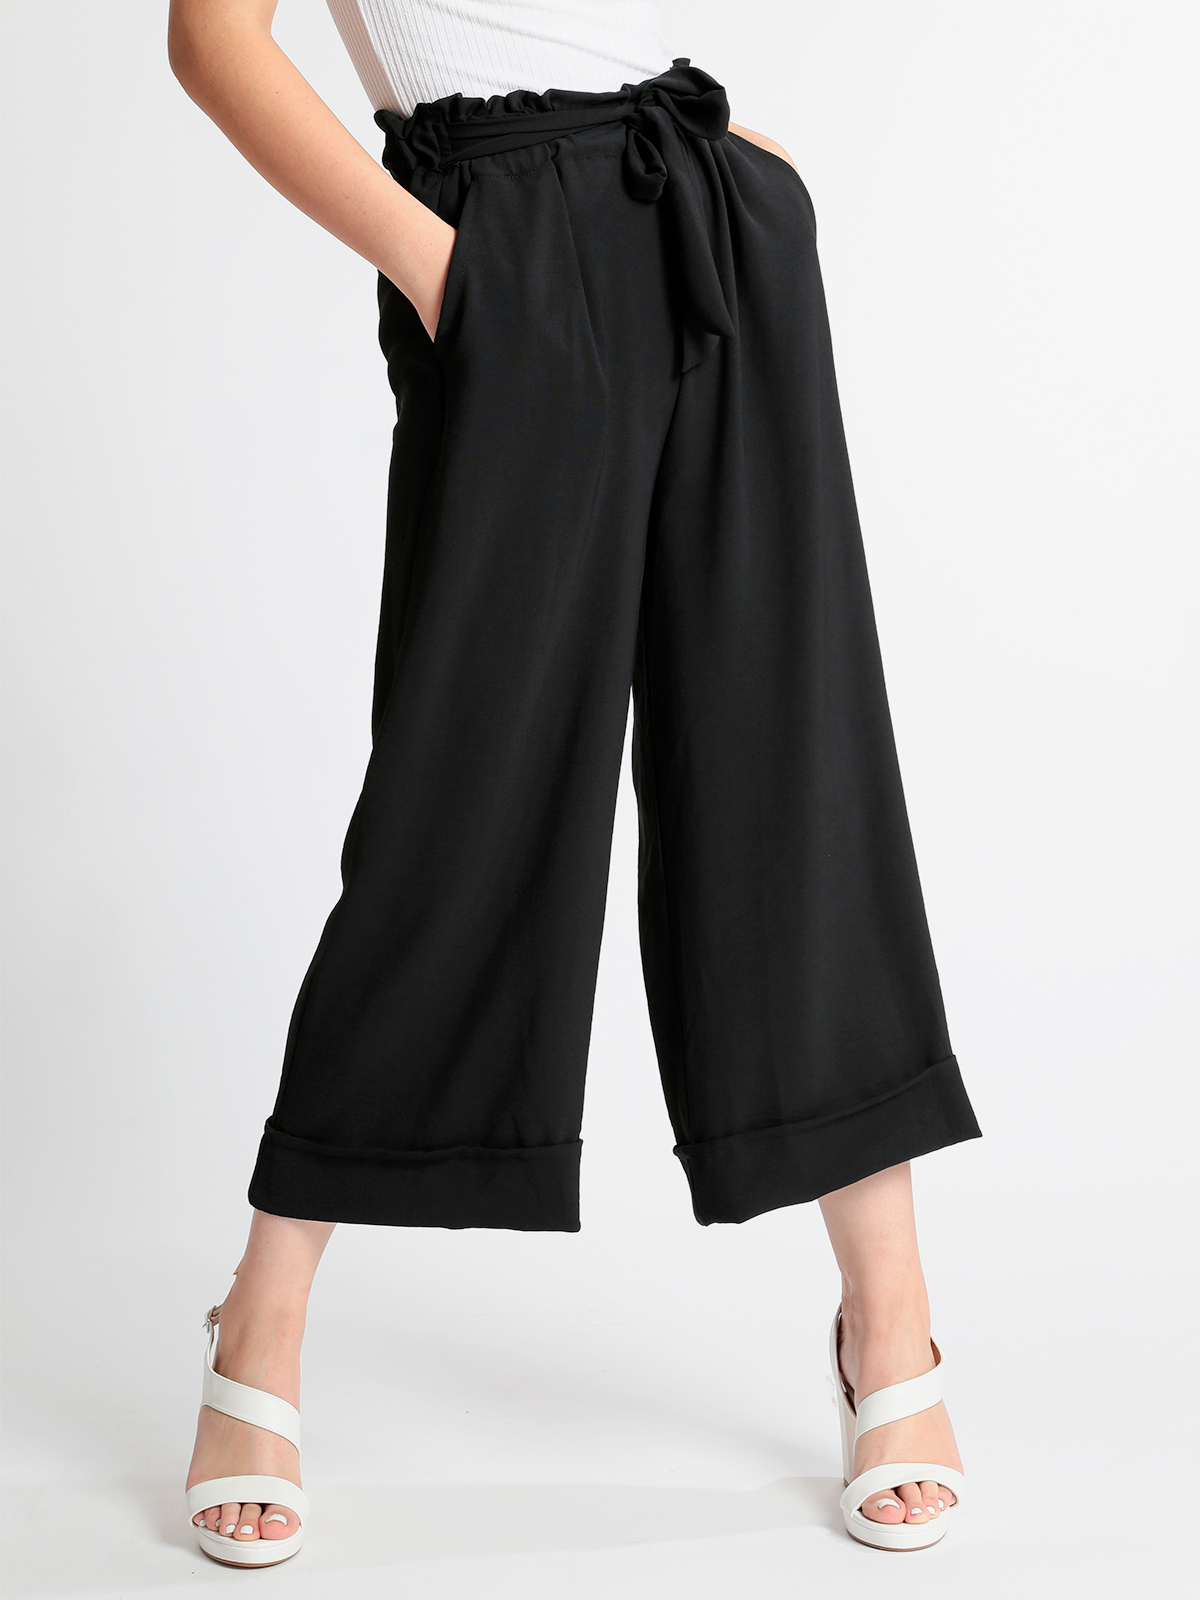 Culotte Pants With Ruffles Waist-Black